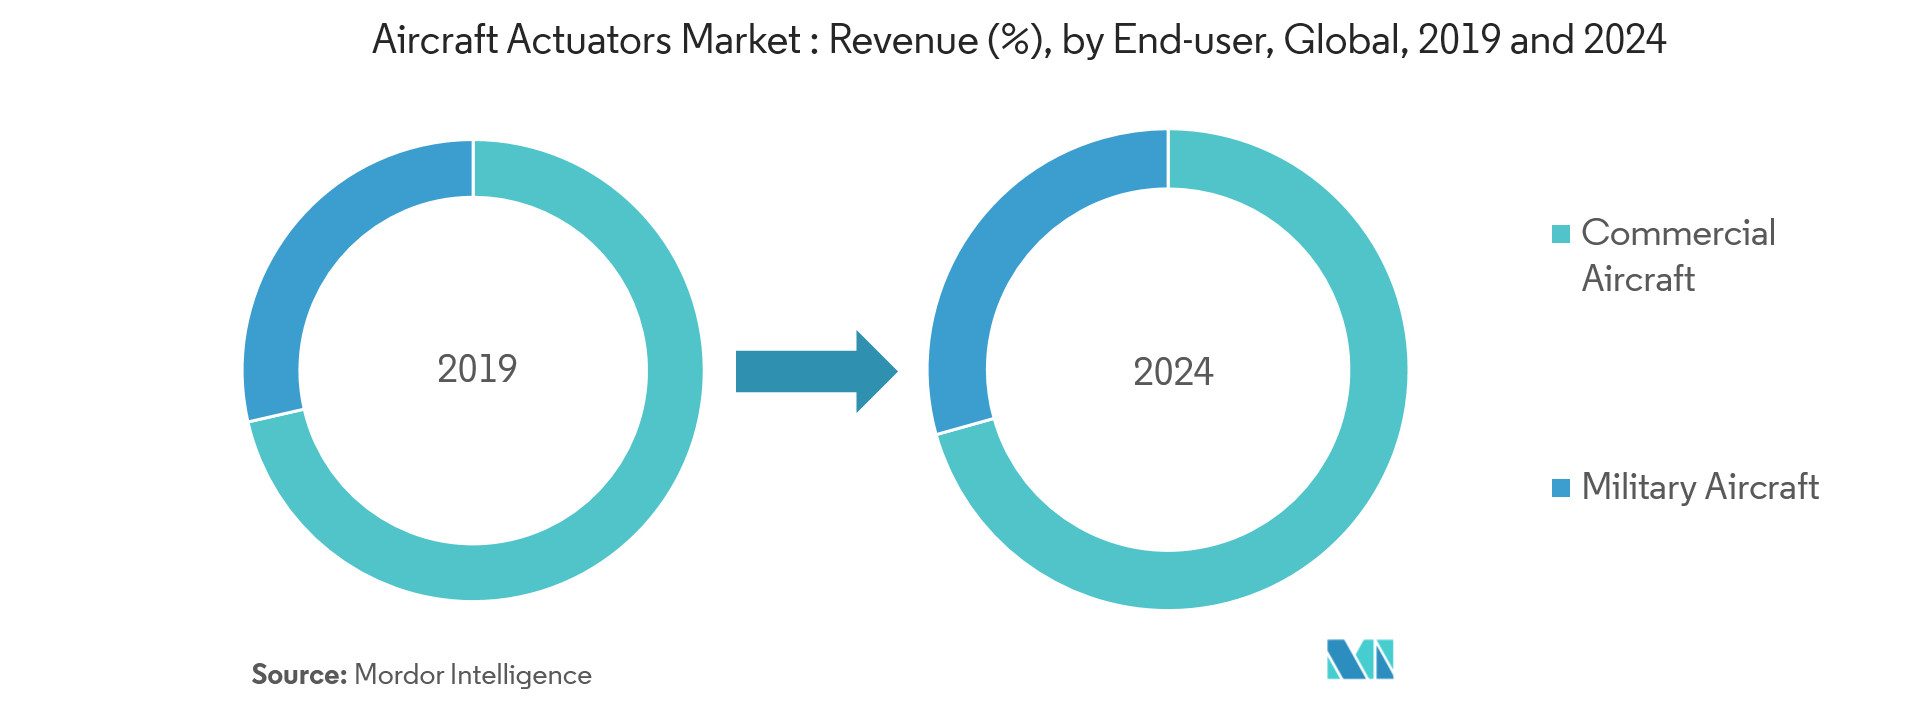 Aircraft Actuators Market segmentation